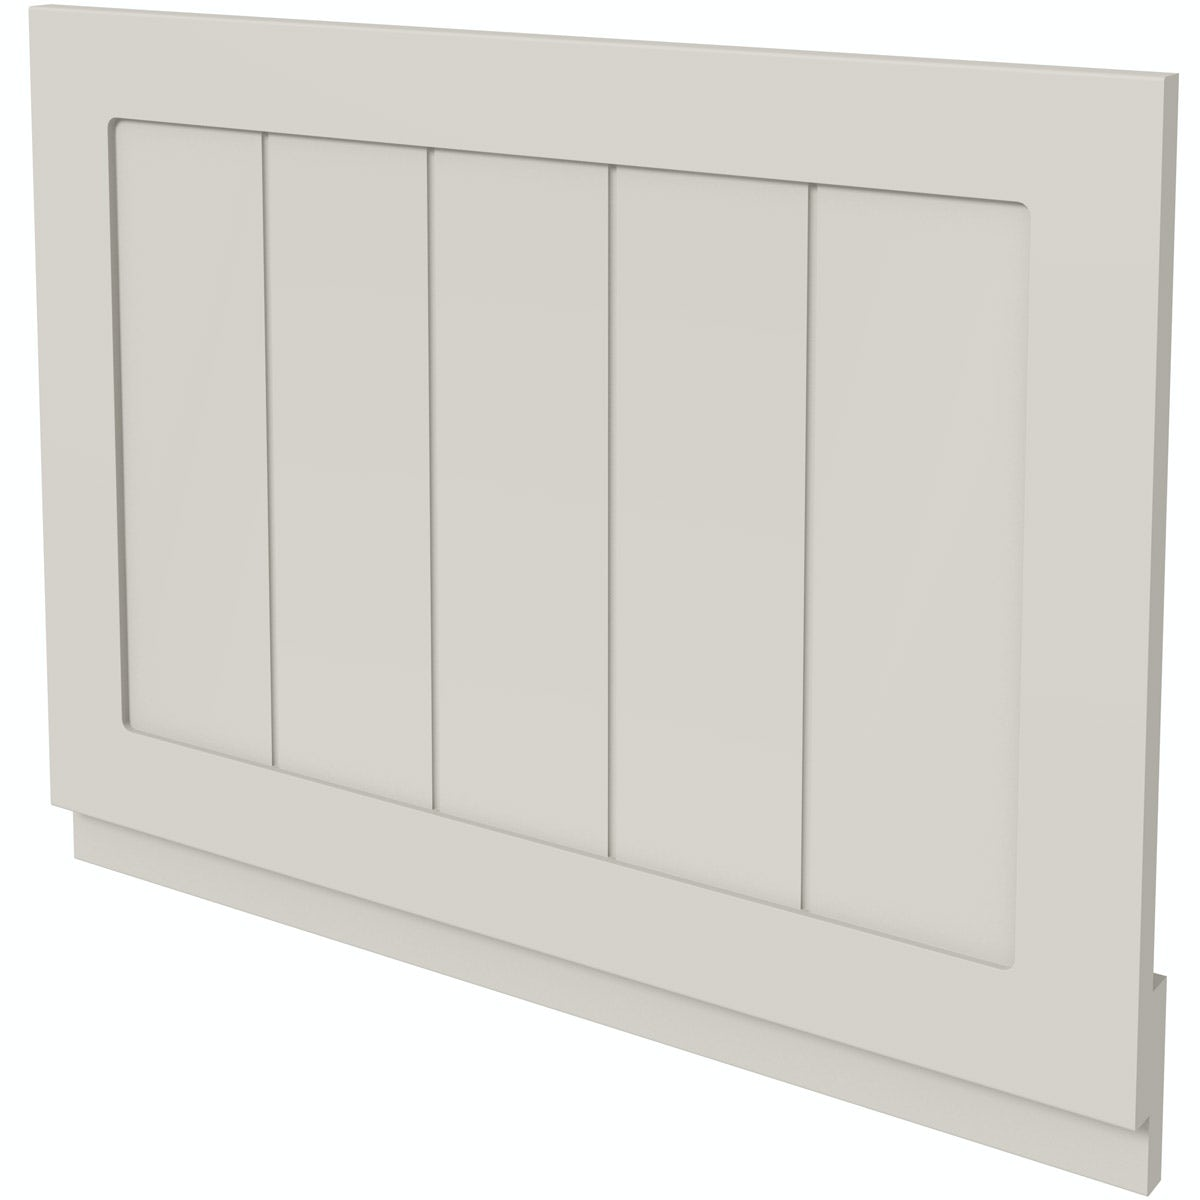 The Bath Co. Dulwich stone ivory wooden bath end panel 700mm